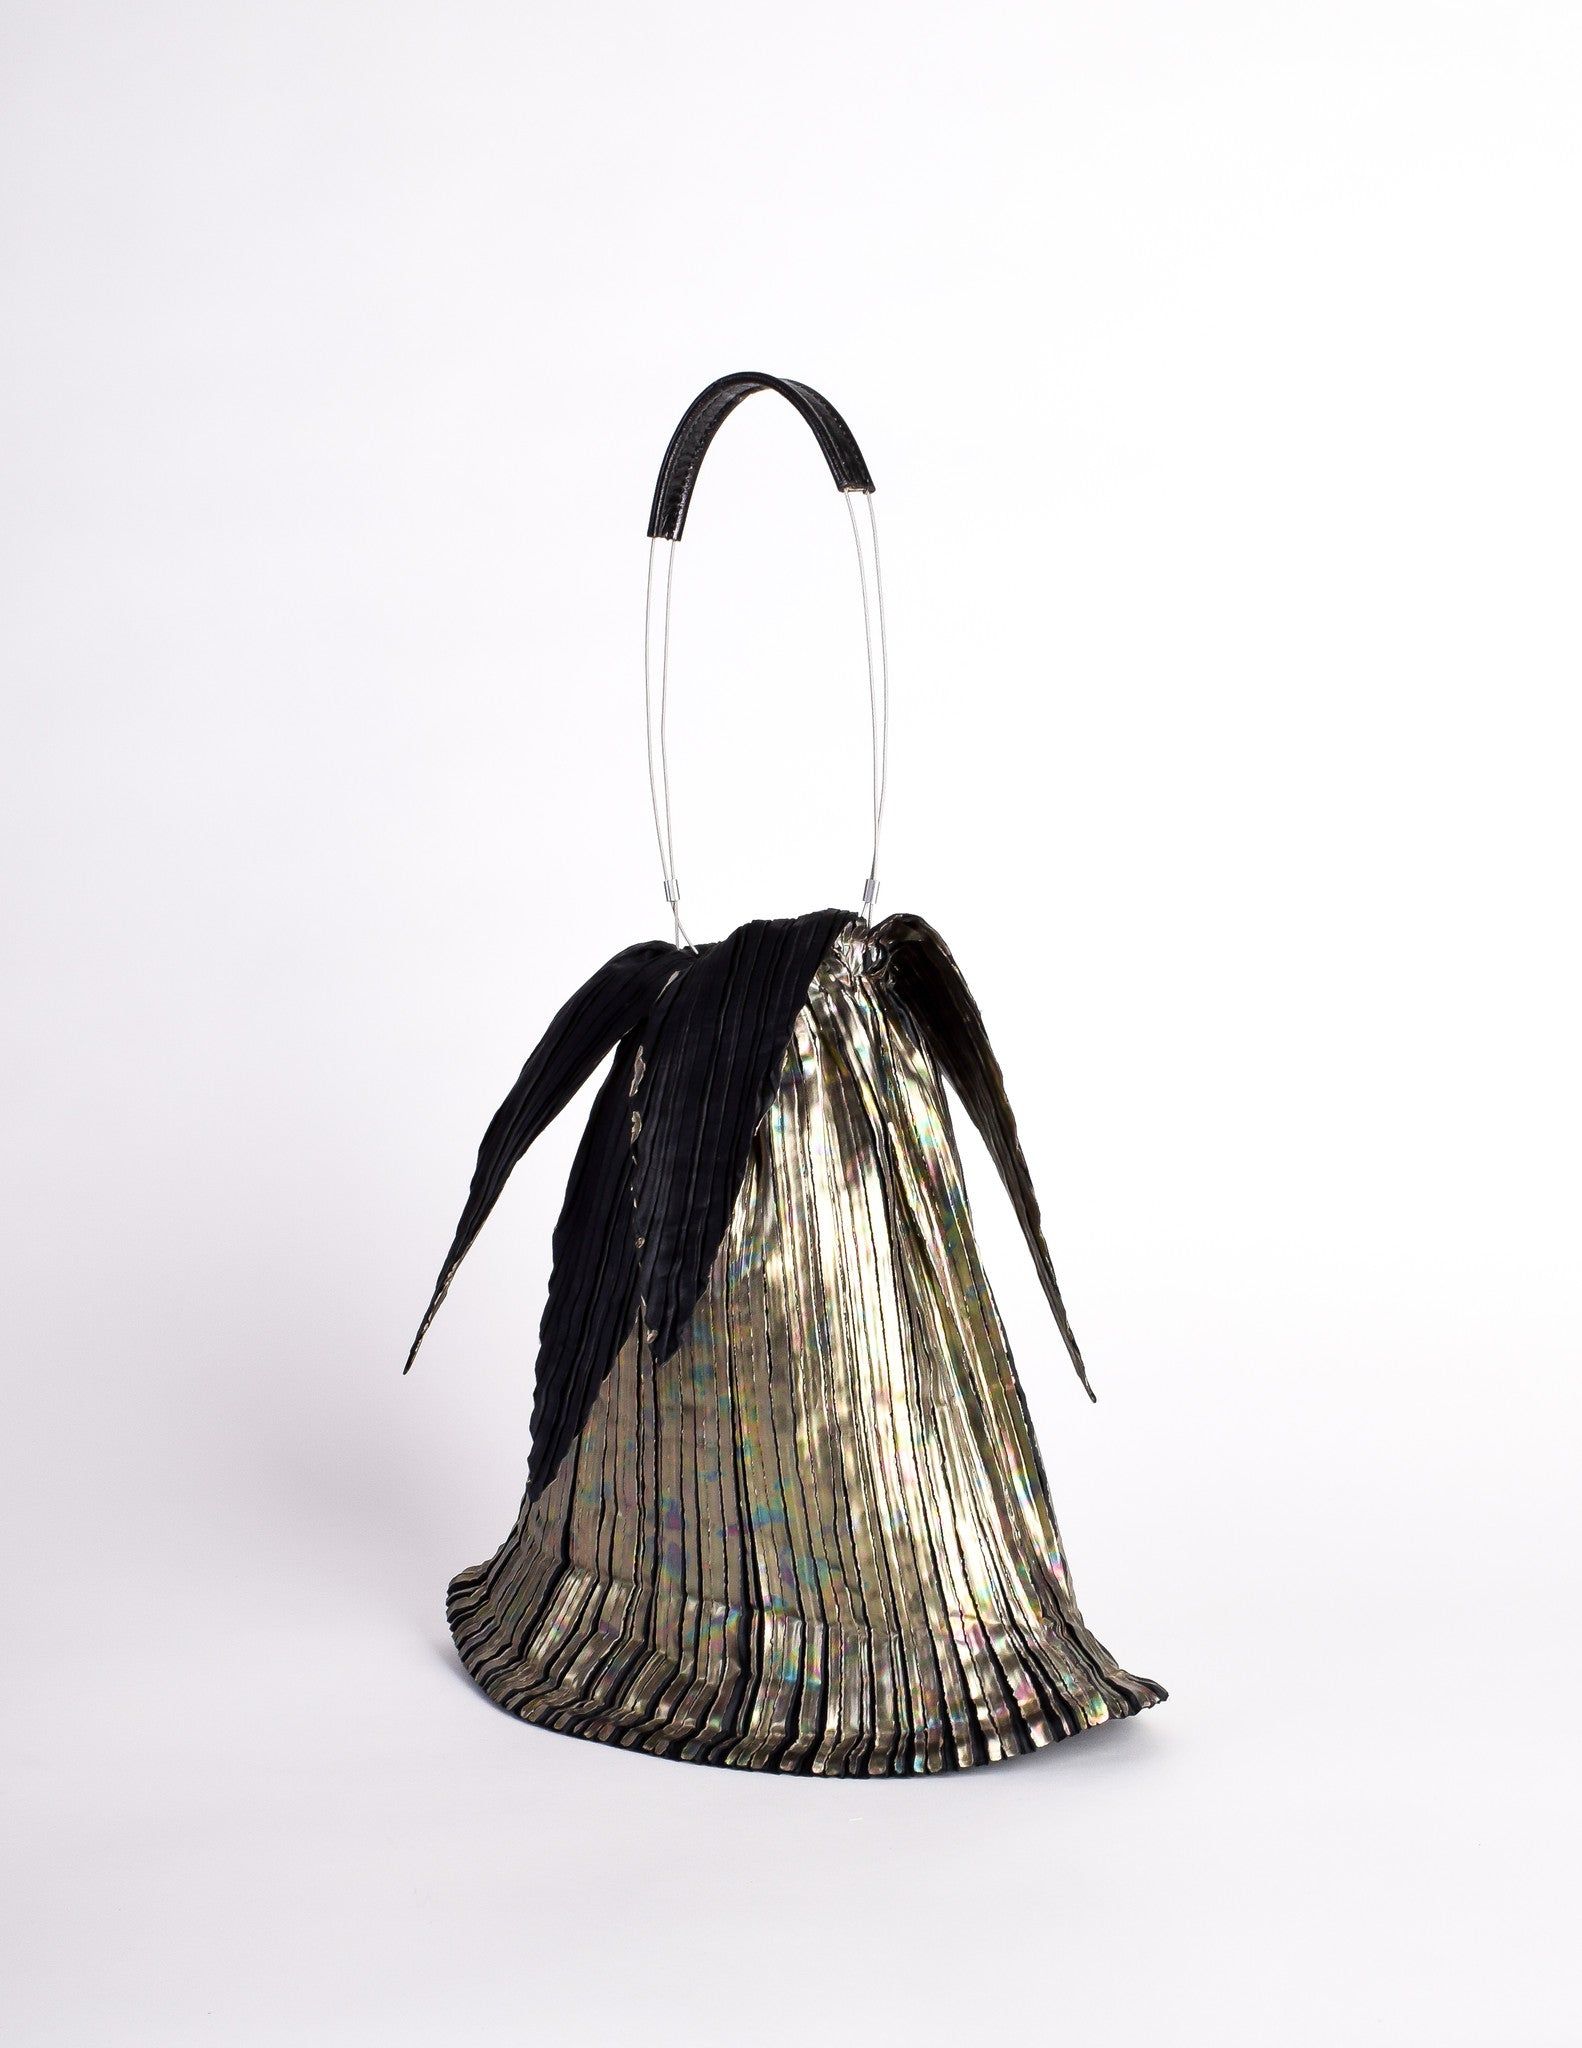 Issey Miyake Vintage Black Gold Iridescent Pleated Bag